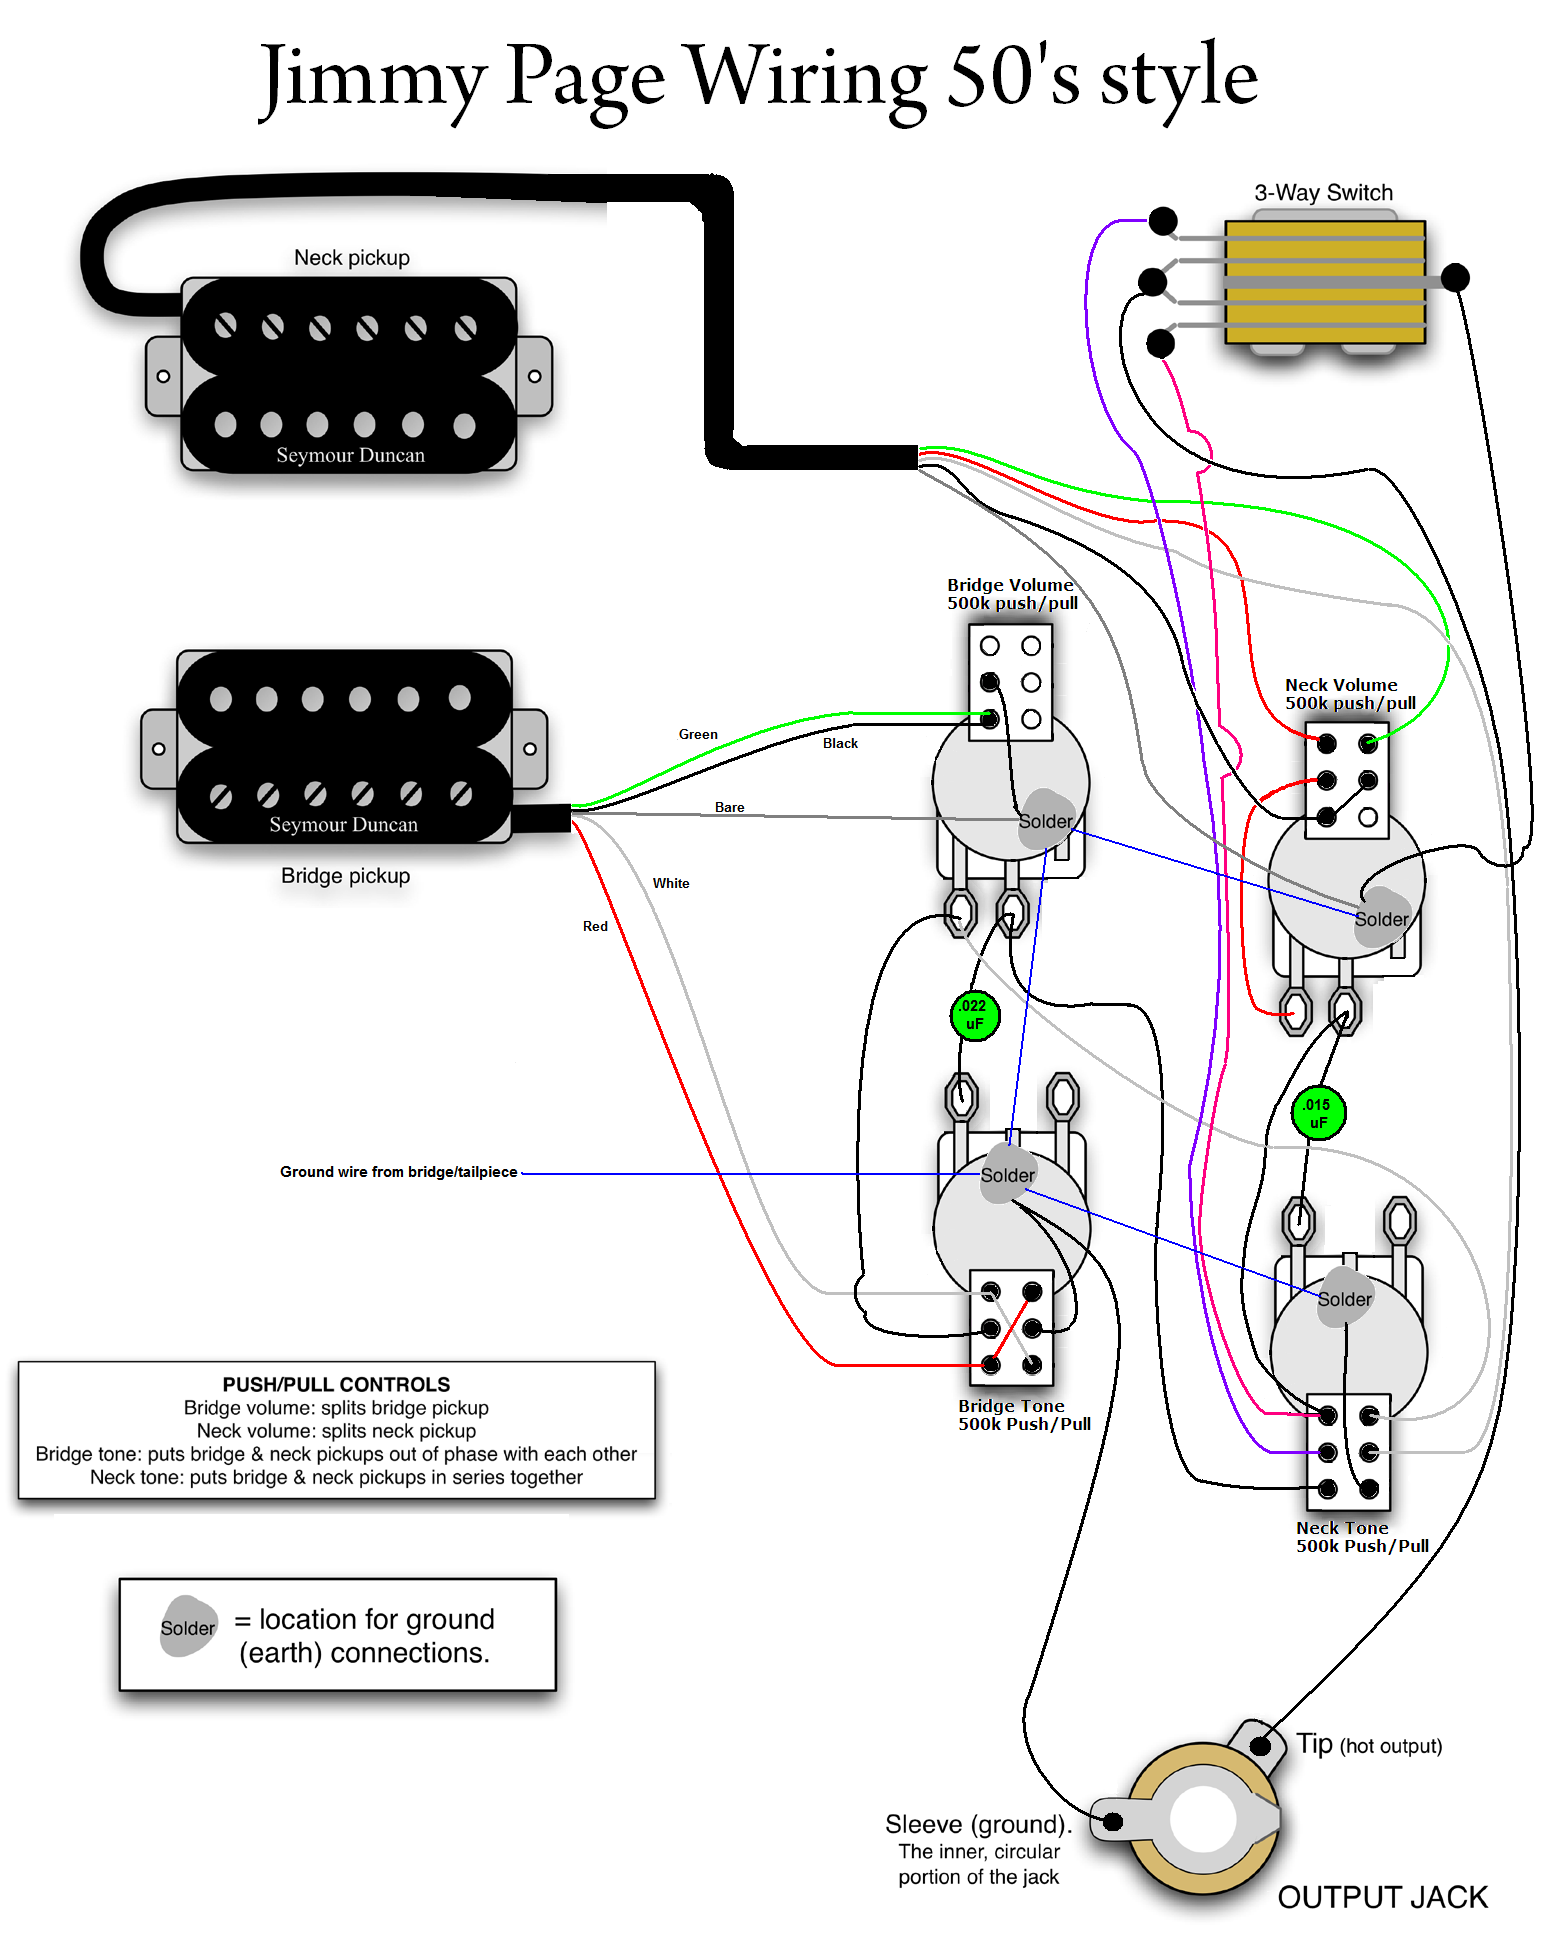 Pj Wiring Diagram Briggs And Stratton Lawn Mower Carburetor Jimmy Page 50s Mylespaul Instruments